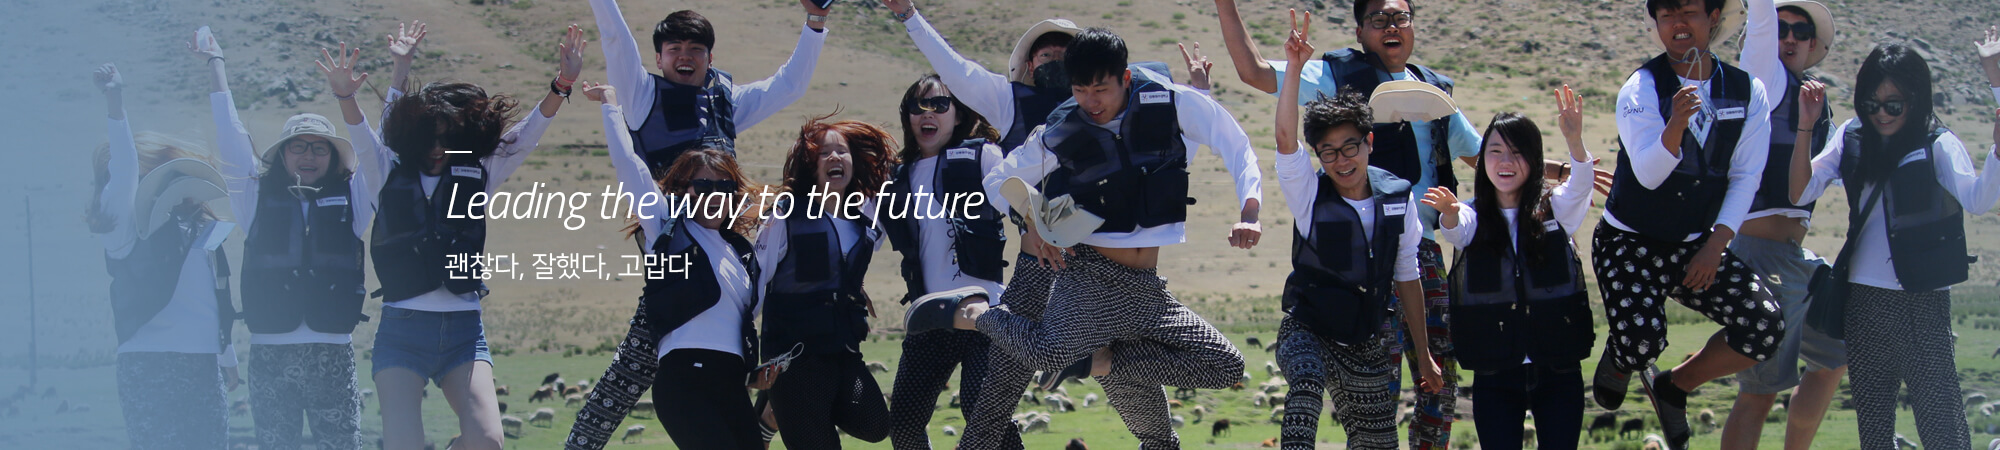 Leading the way to the future, 괜찮다, 잘했다, 고맙다